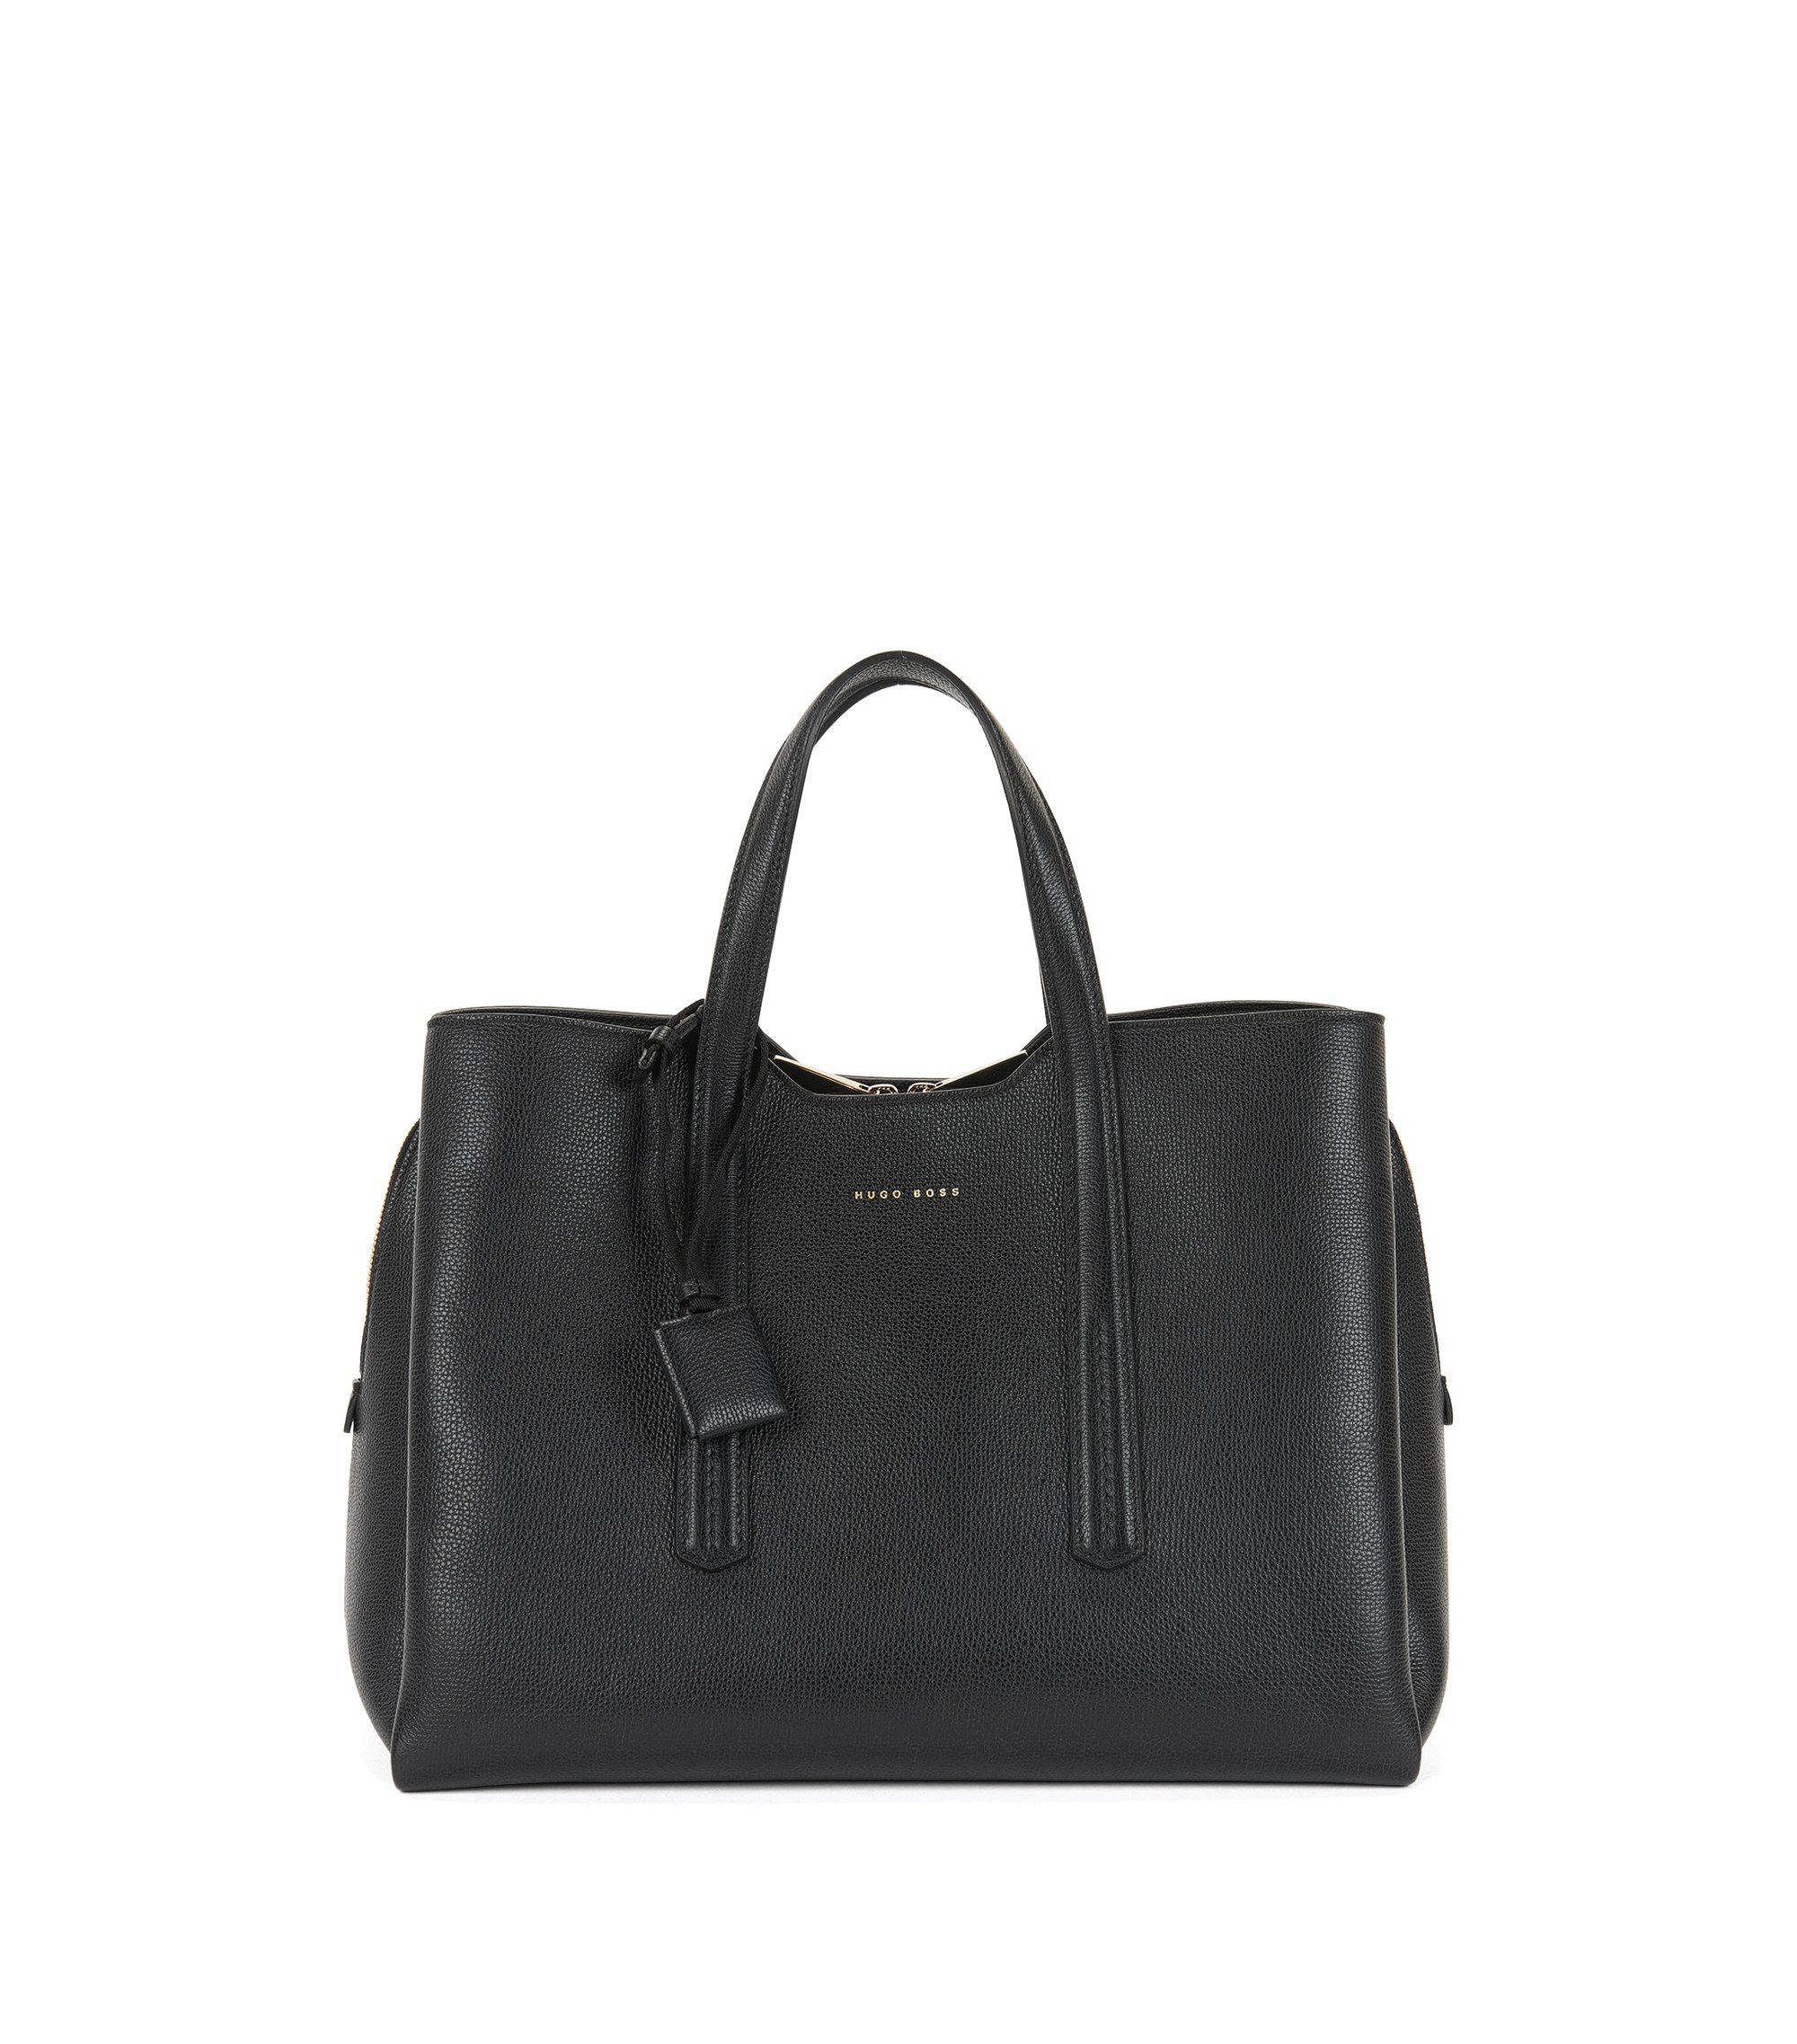 Full-Grain Leather Tote | Taylor Tote, Black